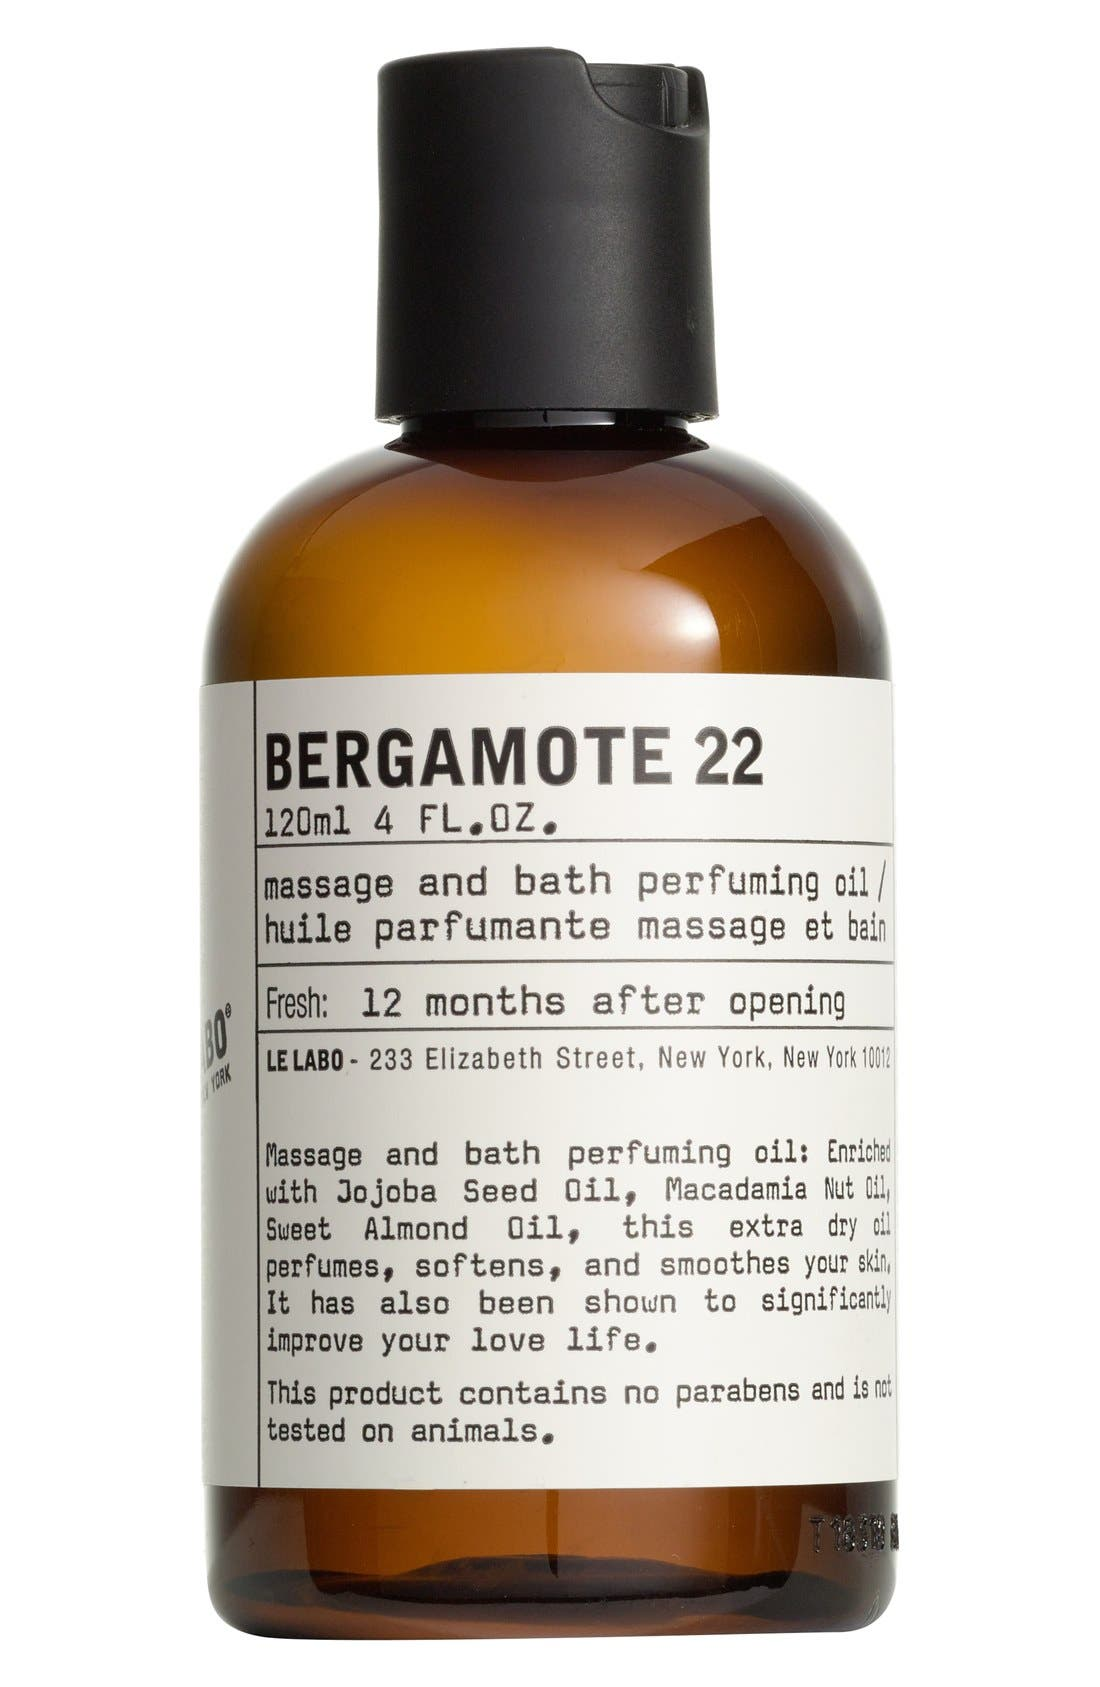 Le Labo 'Bergamote 22' Body Oil